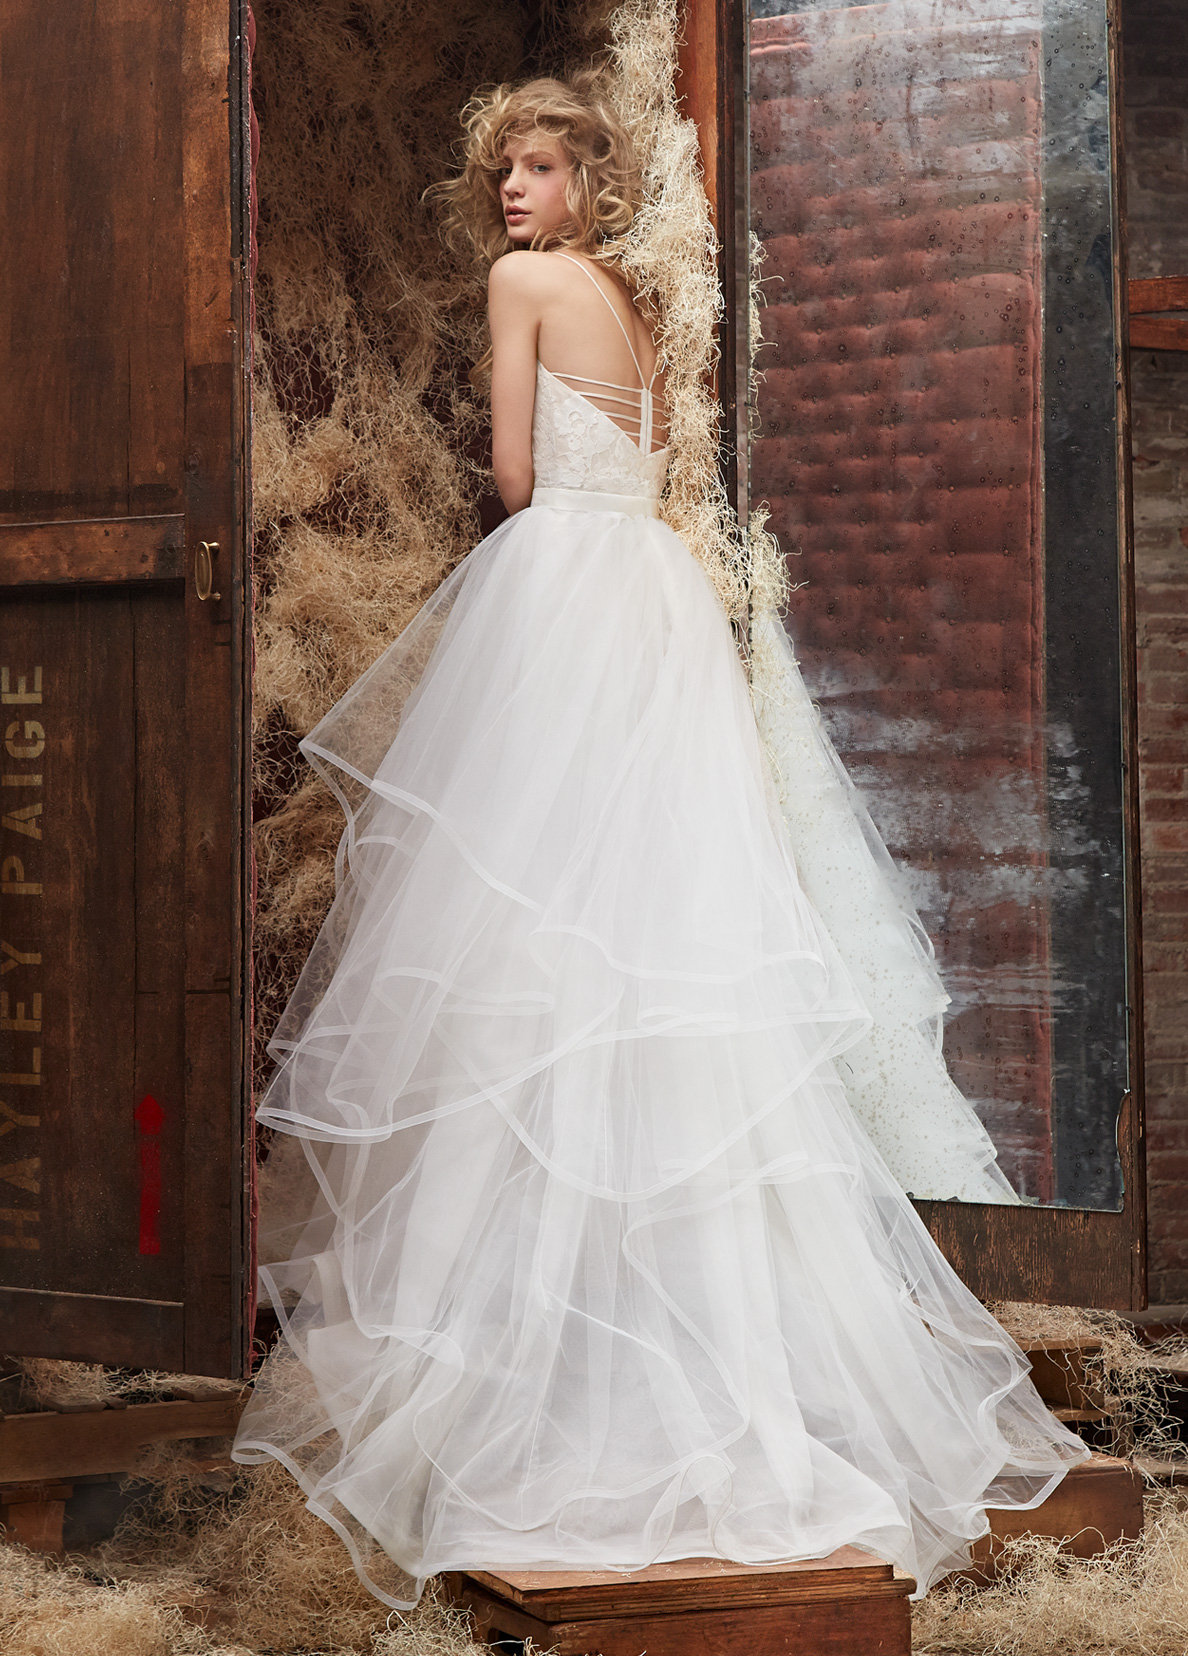 Bridal gowns and wedding dresses by jlm couture style 6457 for Undergarments for wedding dress